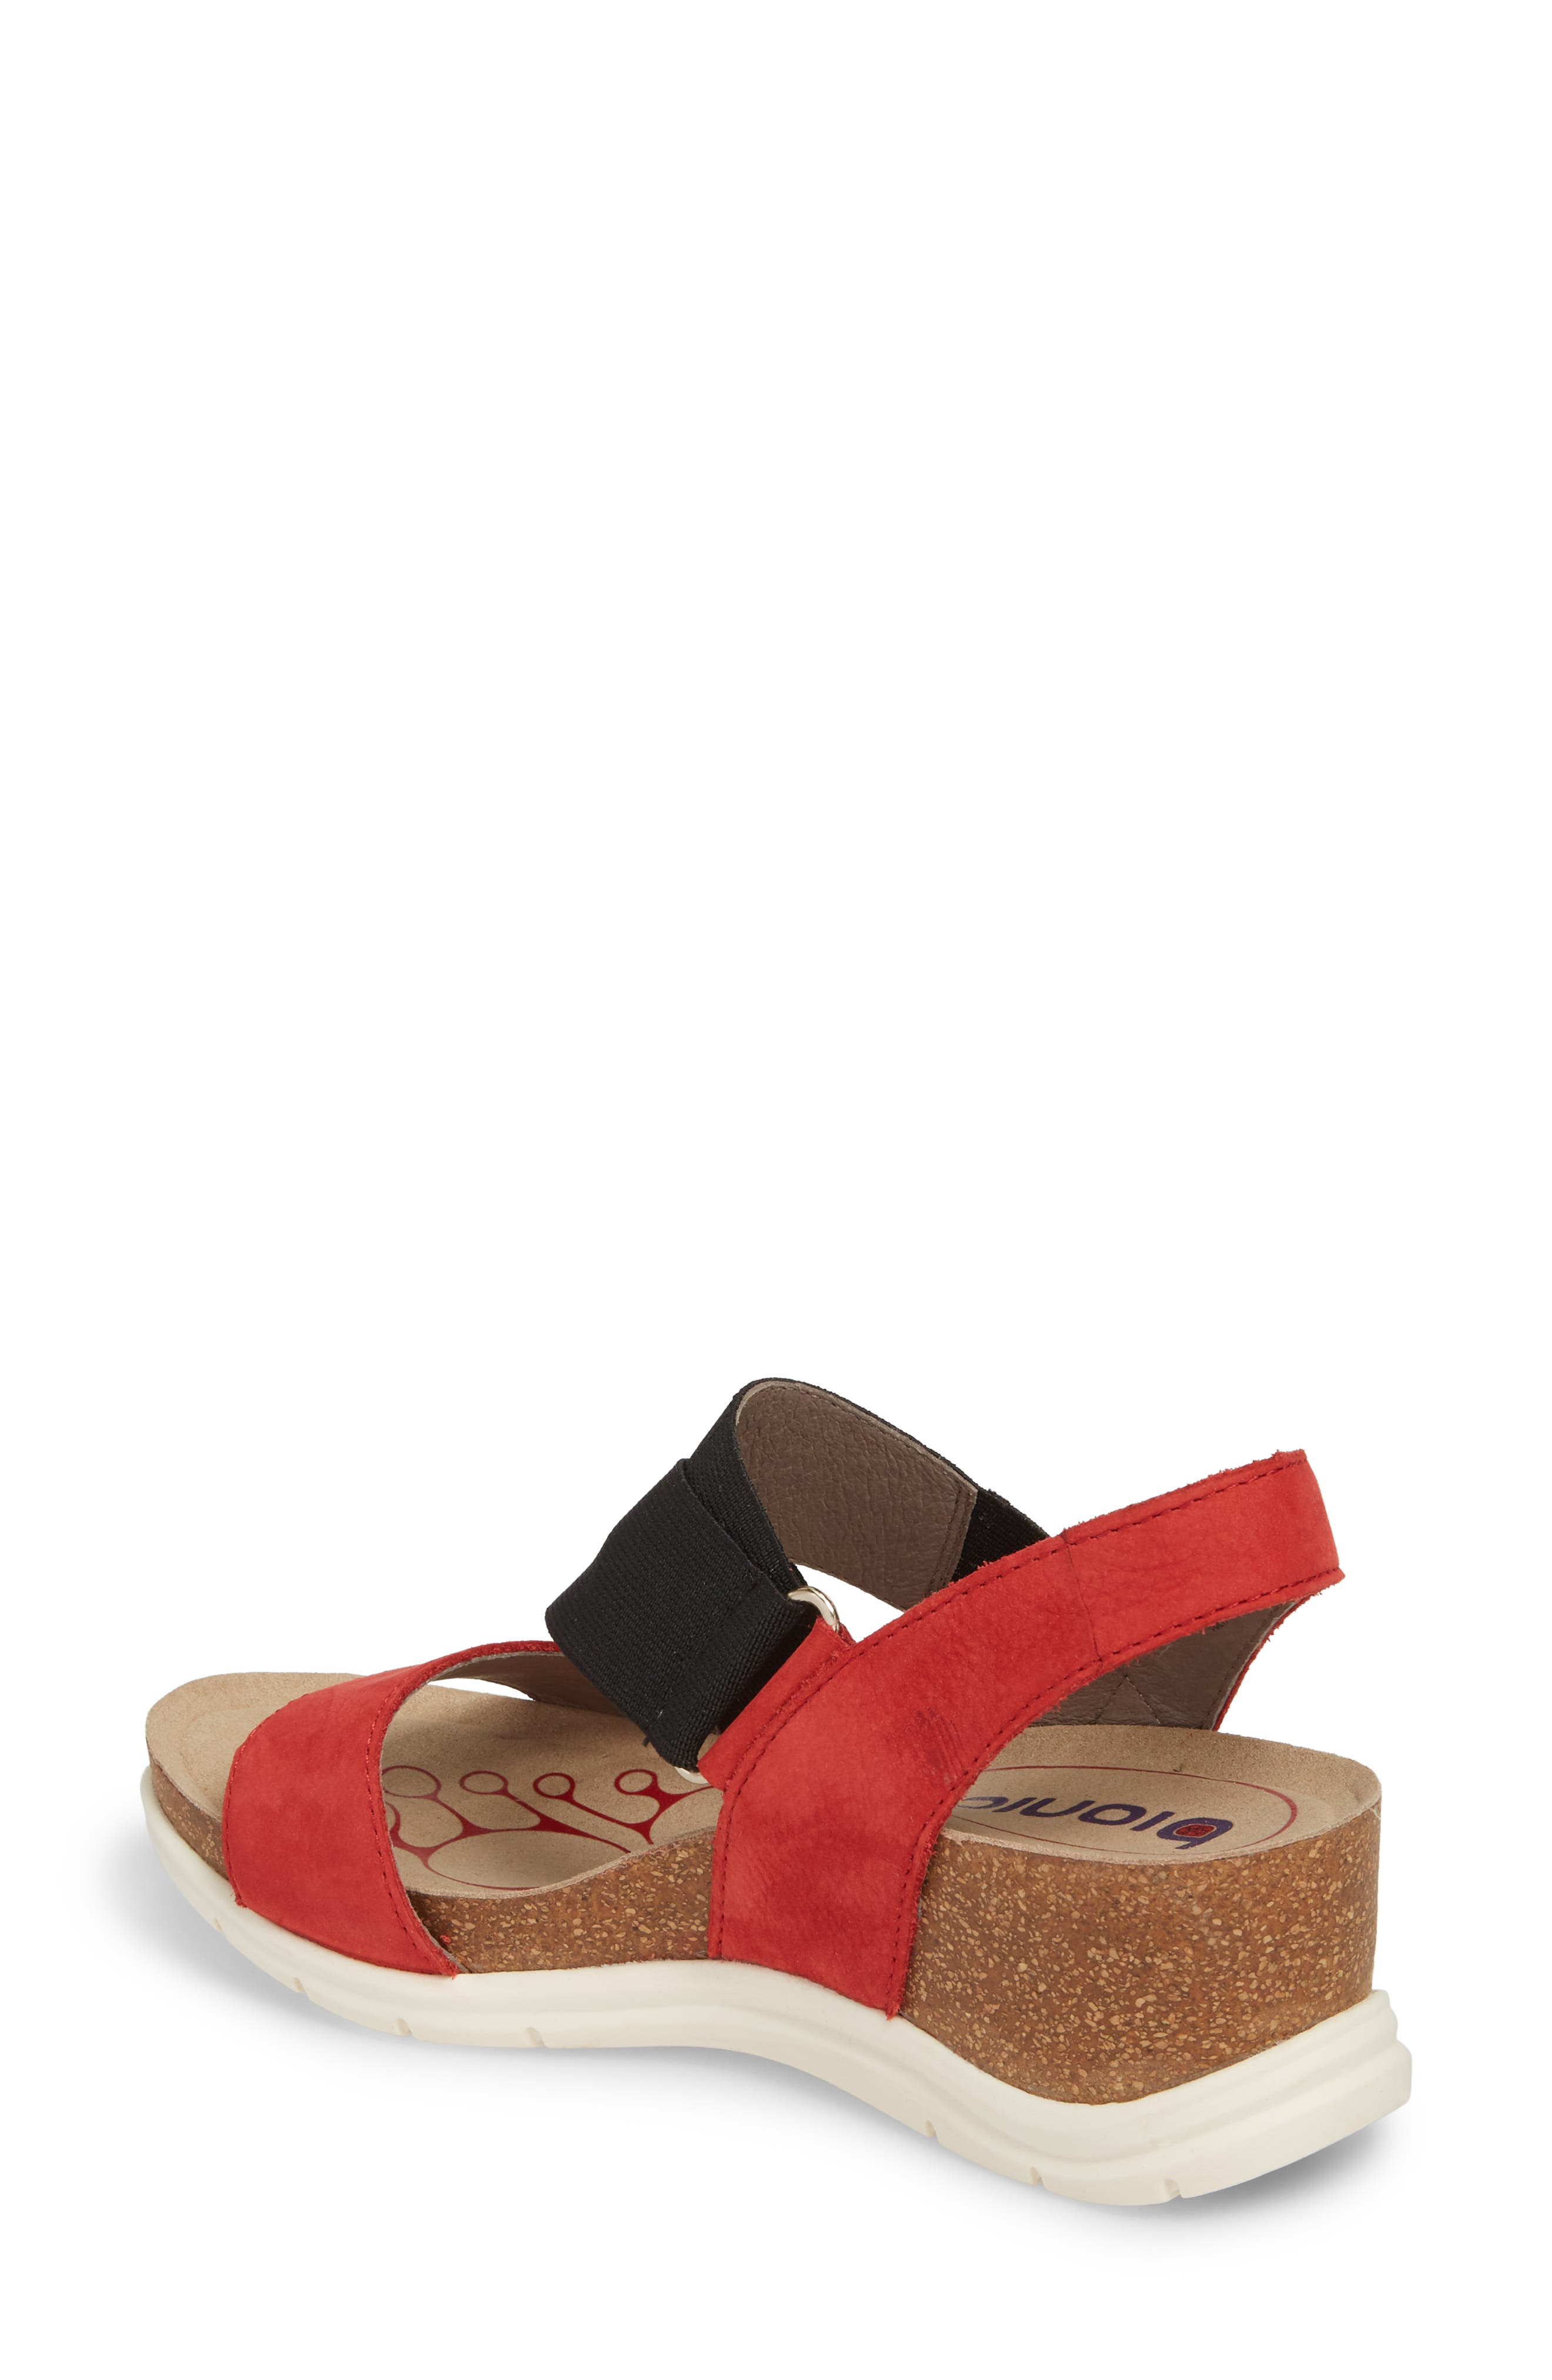 Paisley Wedge Sandal,                             Alternate thumbnail 2, color,                             Coral Leather